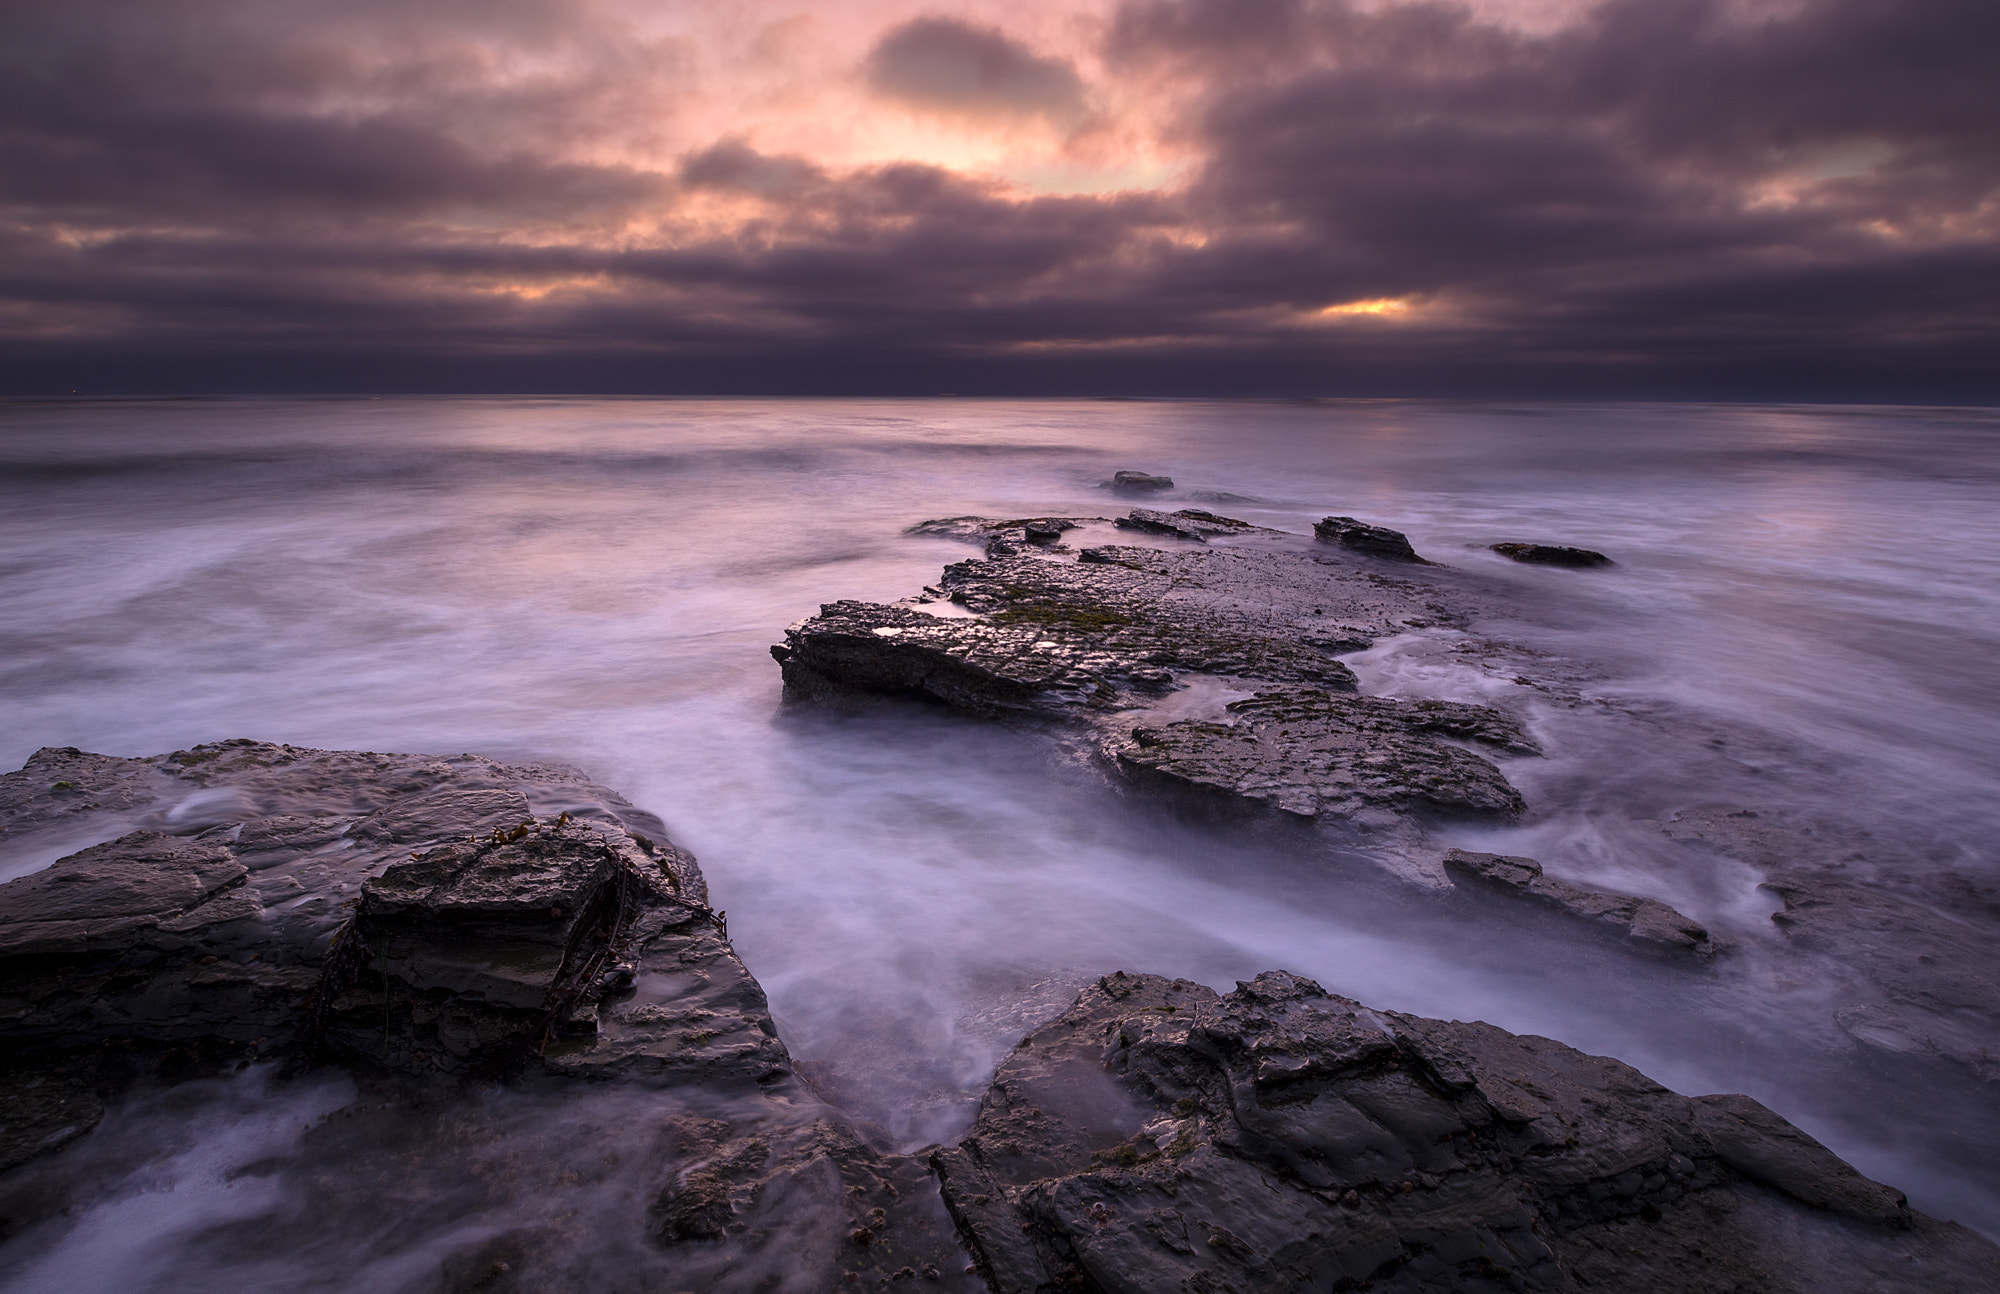 Photograph La Jolla by Matthew Kuhns on 500px